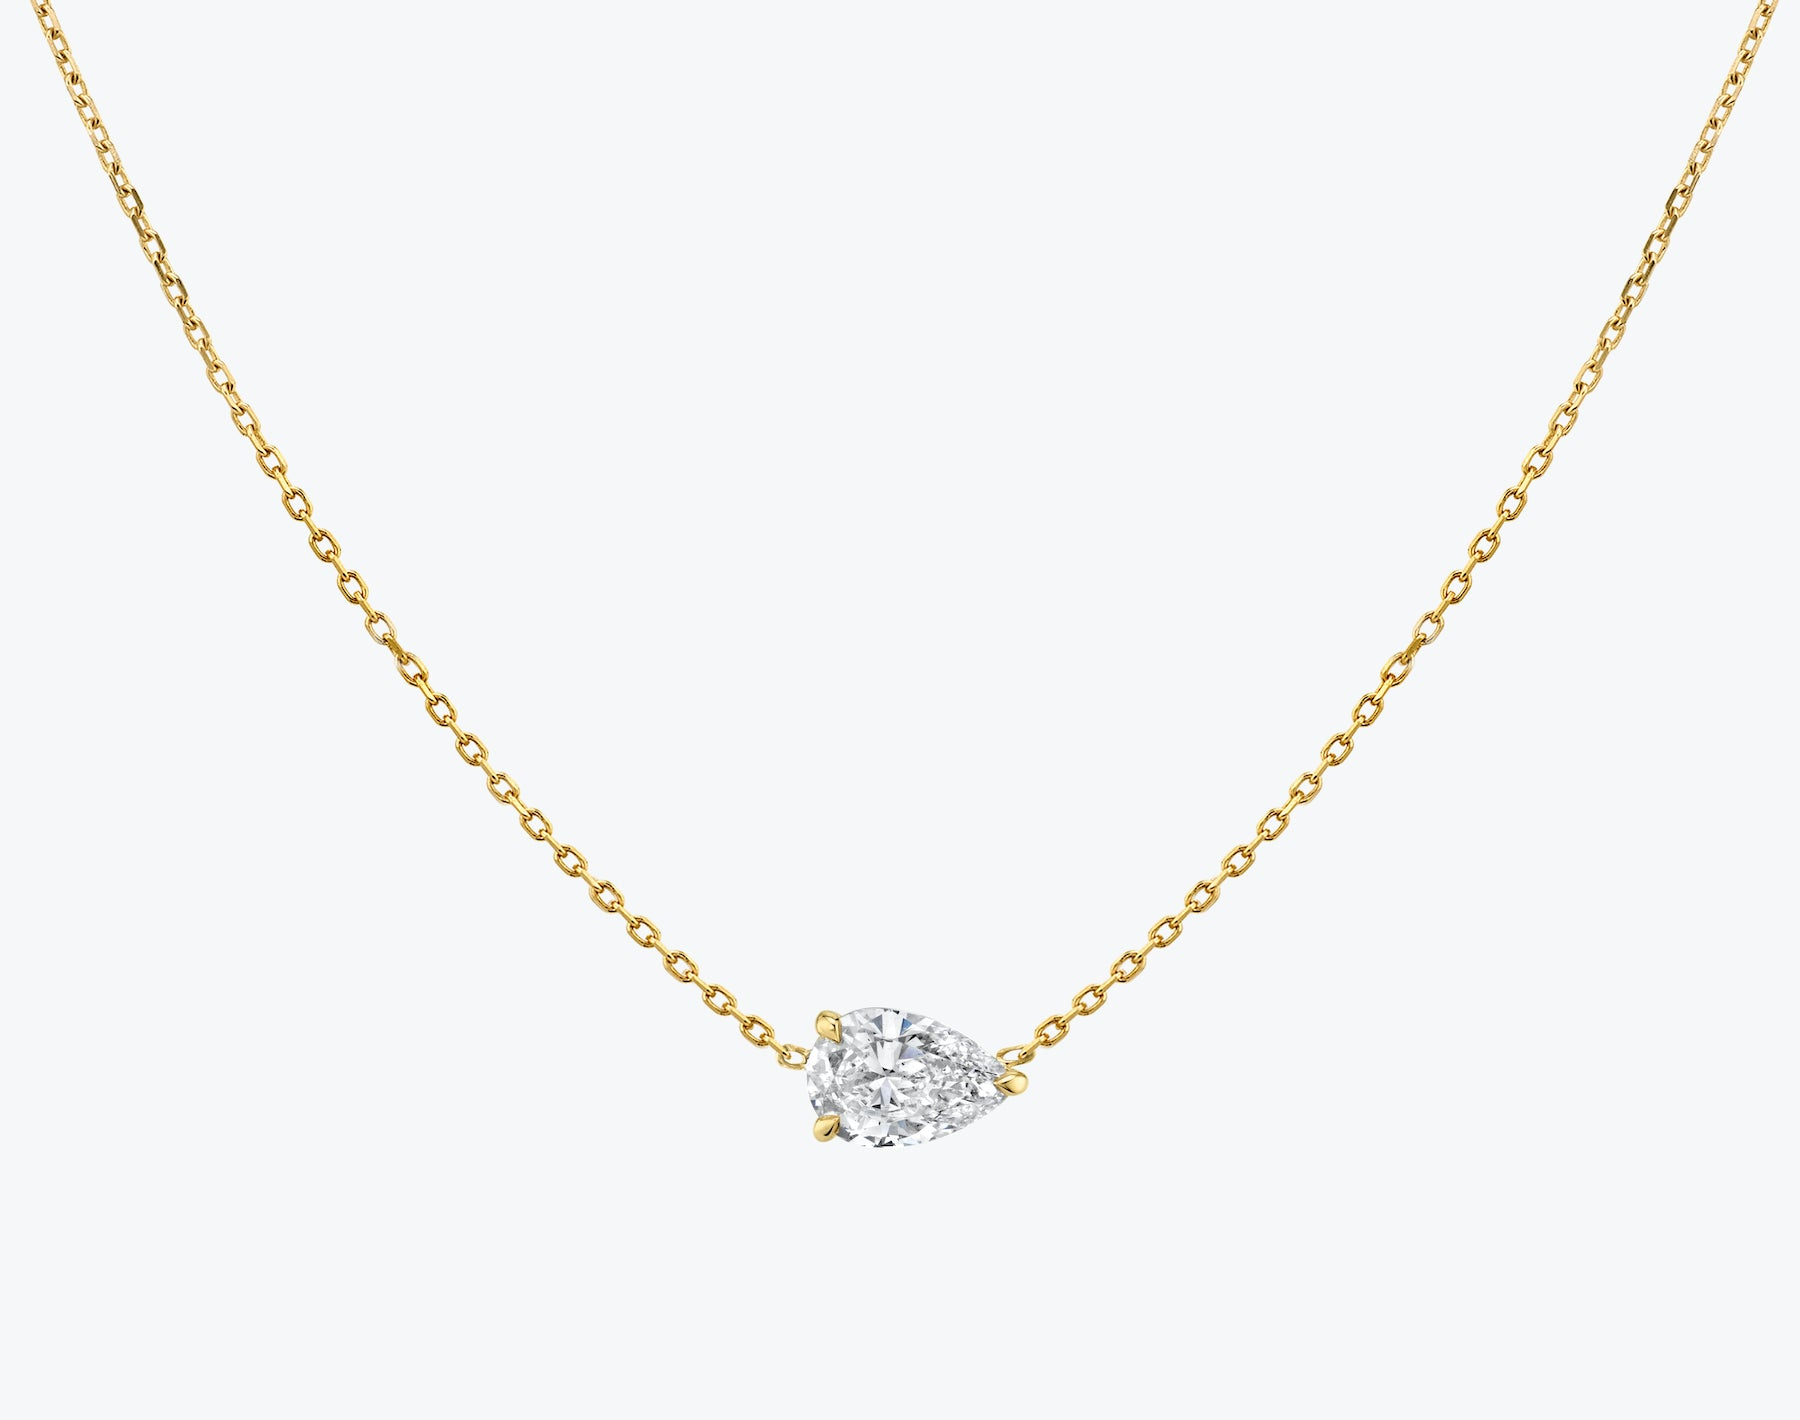 Vrai 14K solid gold solitaire pear diamond necklace 1ct minimalist delicate, 14K Yellow Gold